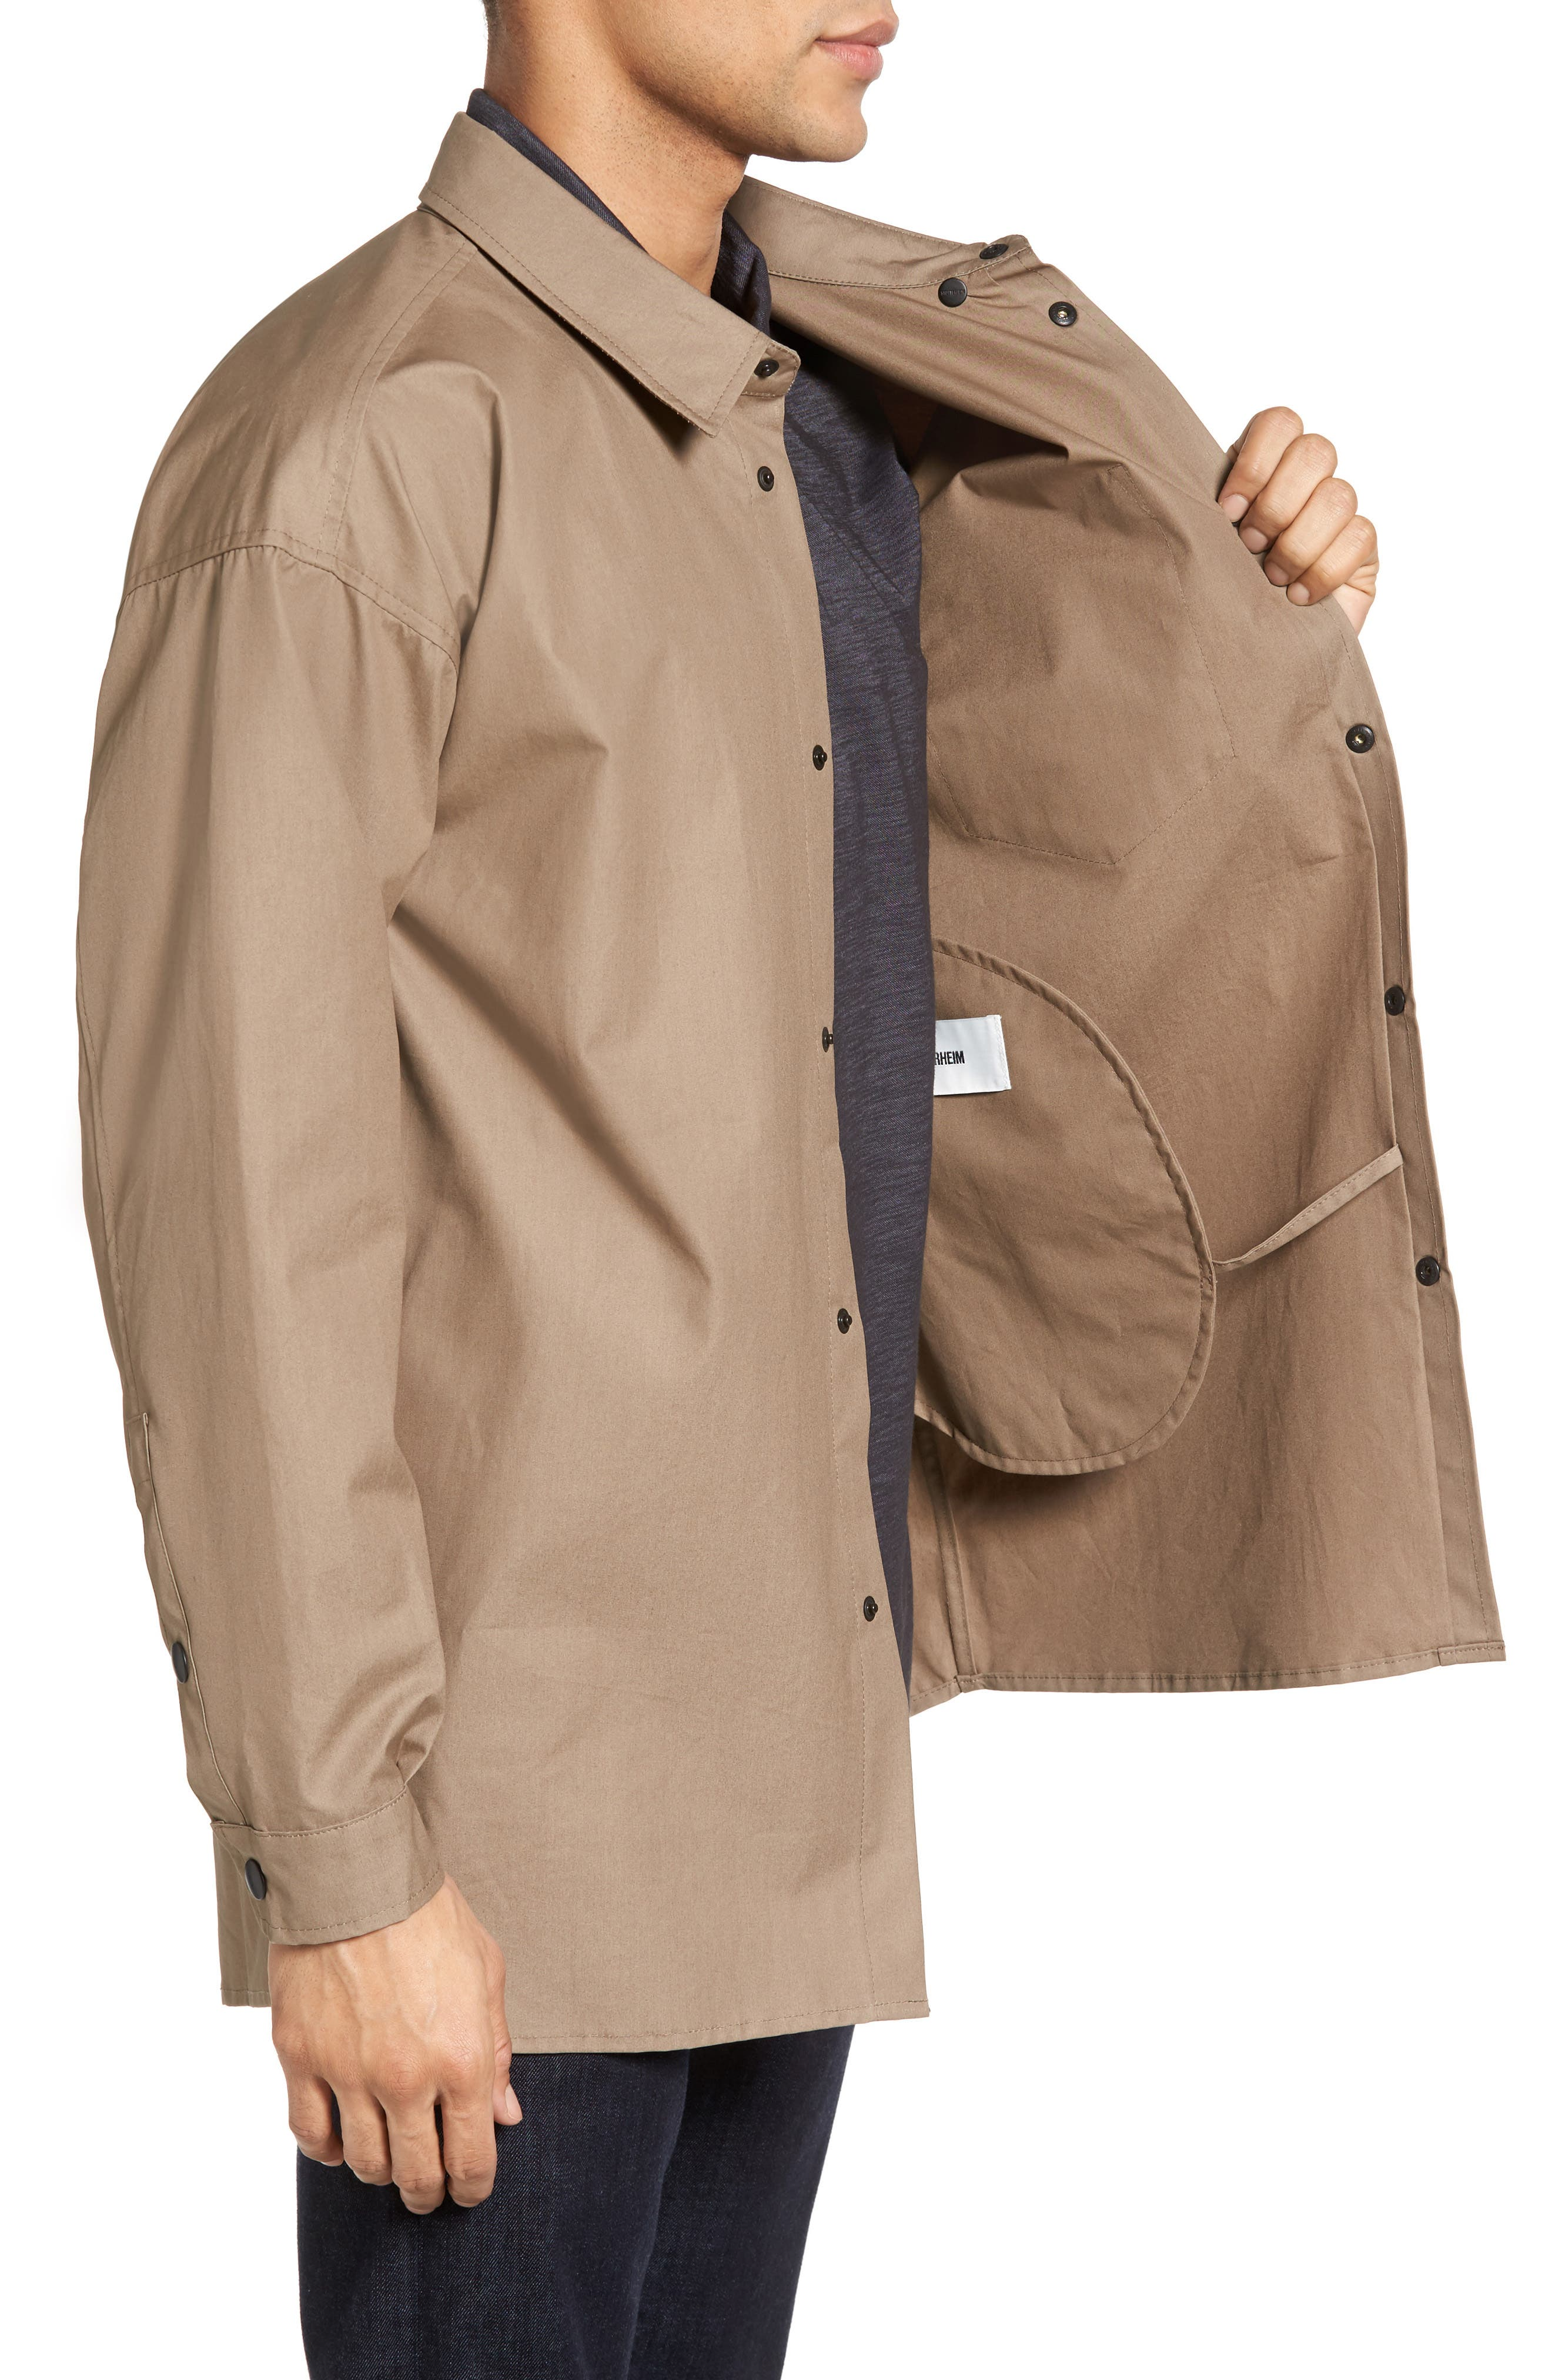 Lerum Relaxed Fit Shirt Jacket,                             Alternate thumbnail 5, color,